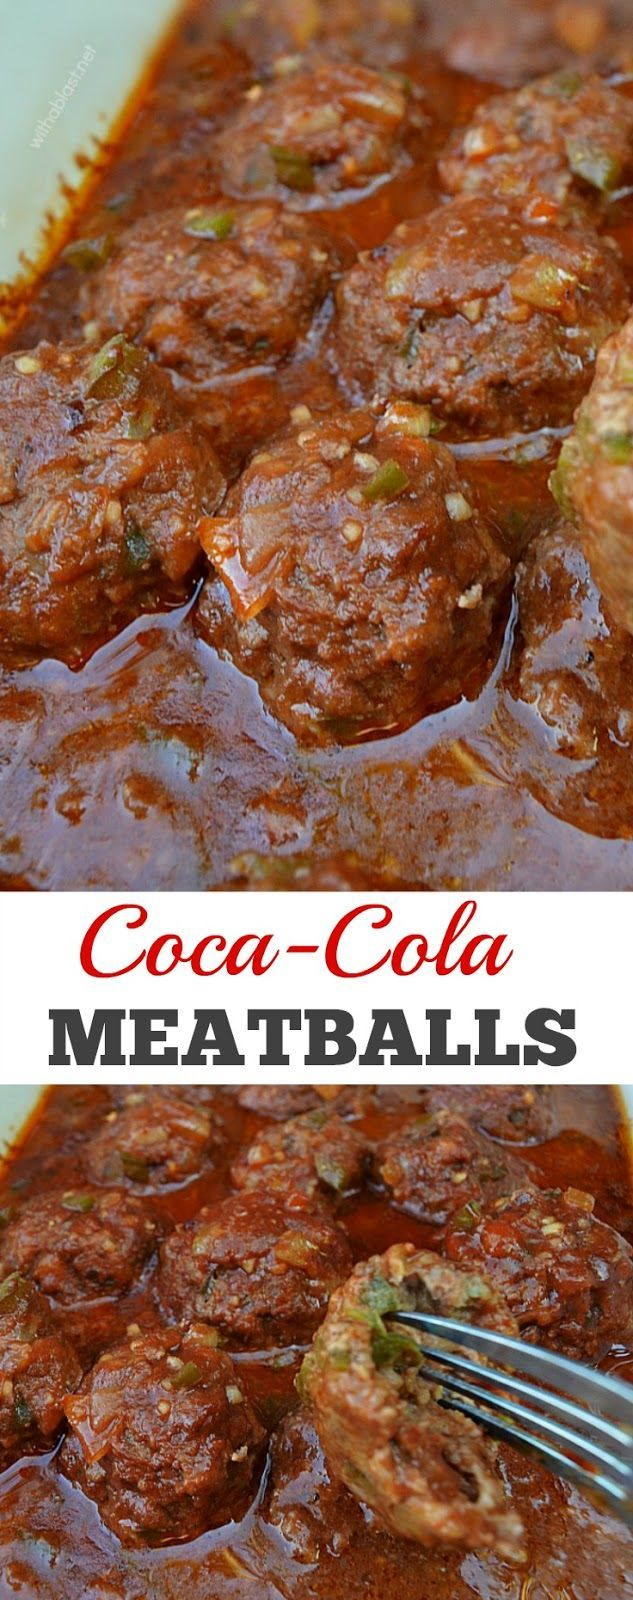 Tangy and saucy Coca-Cola Meatballs - my family's favorite dinner choice ! Serve over pasta, rice or mashed potatoes